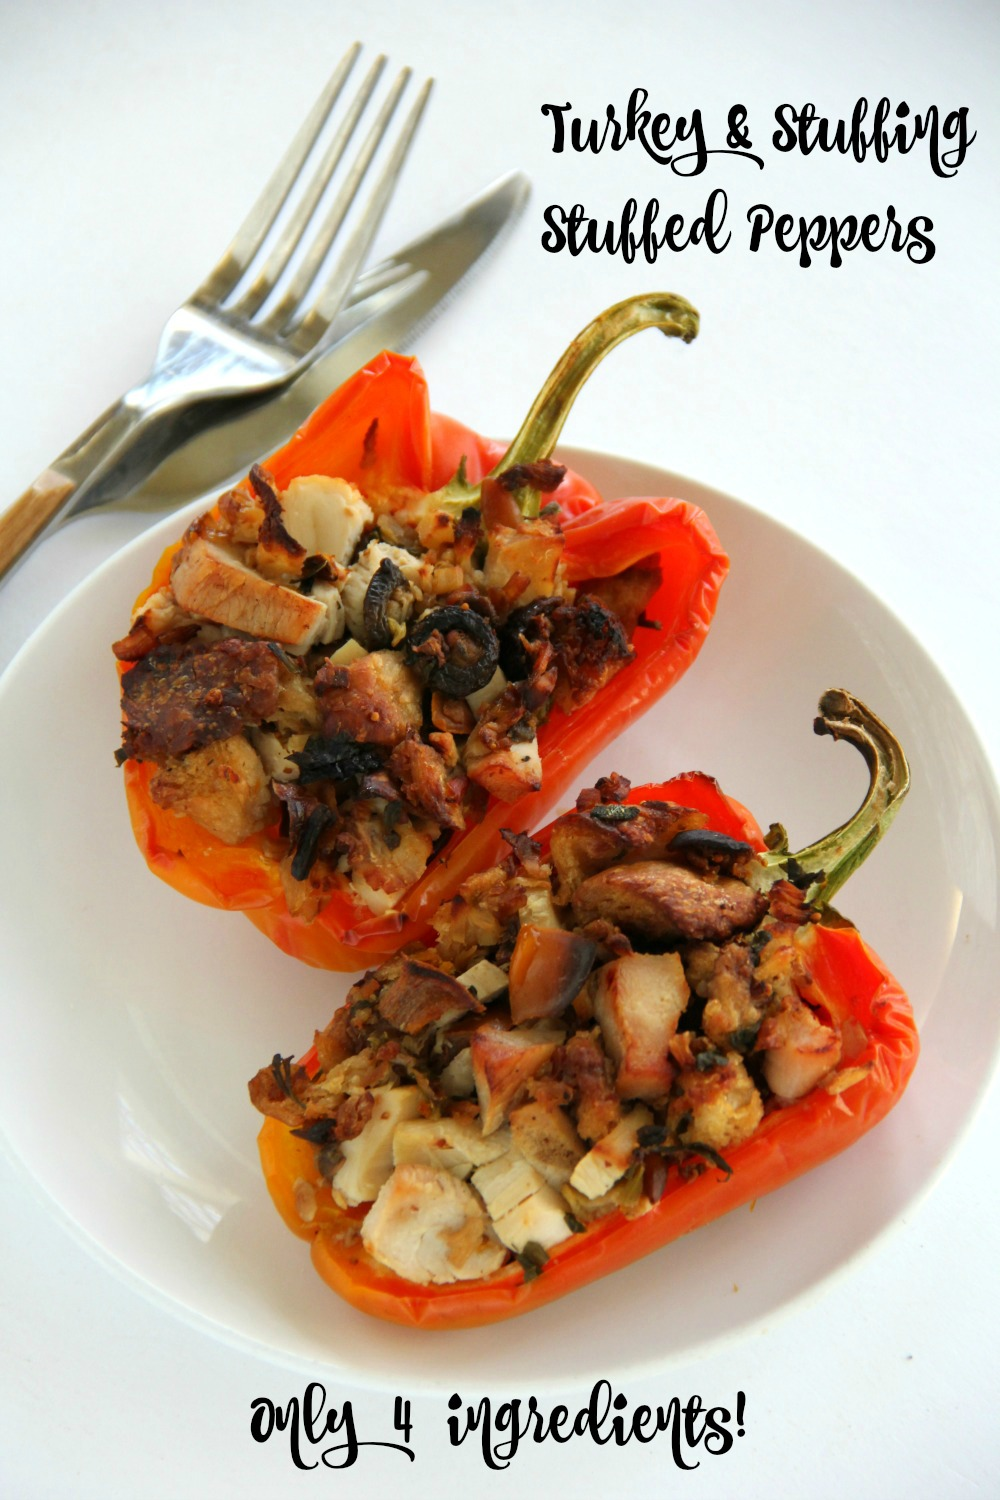 Turkey and Stuffing Stuffed Peppers on a white plate on a white background